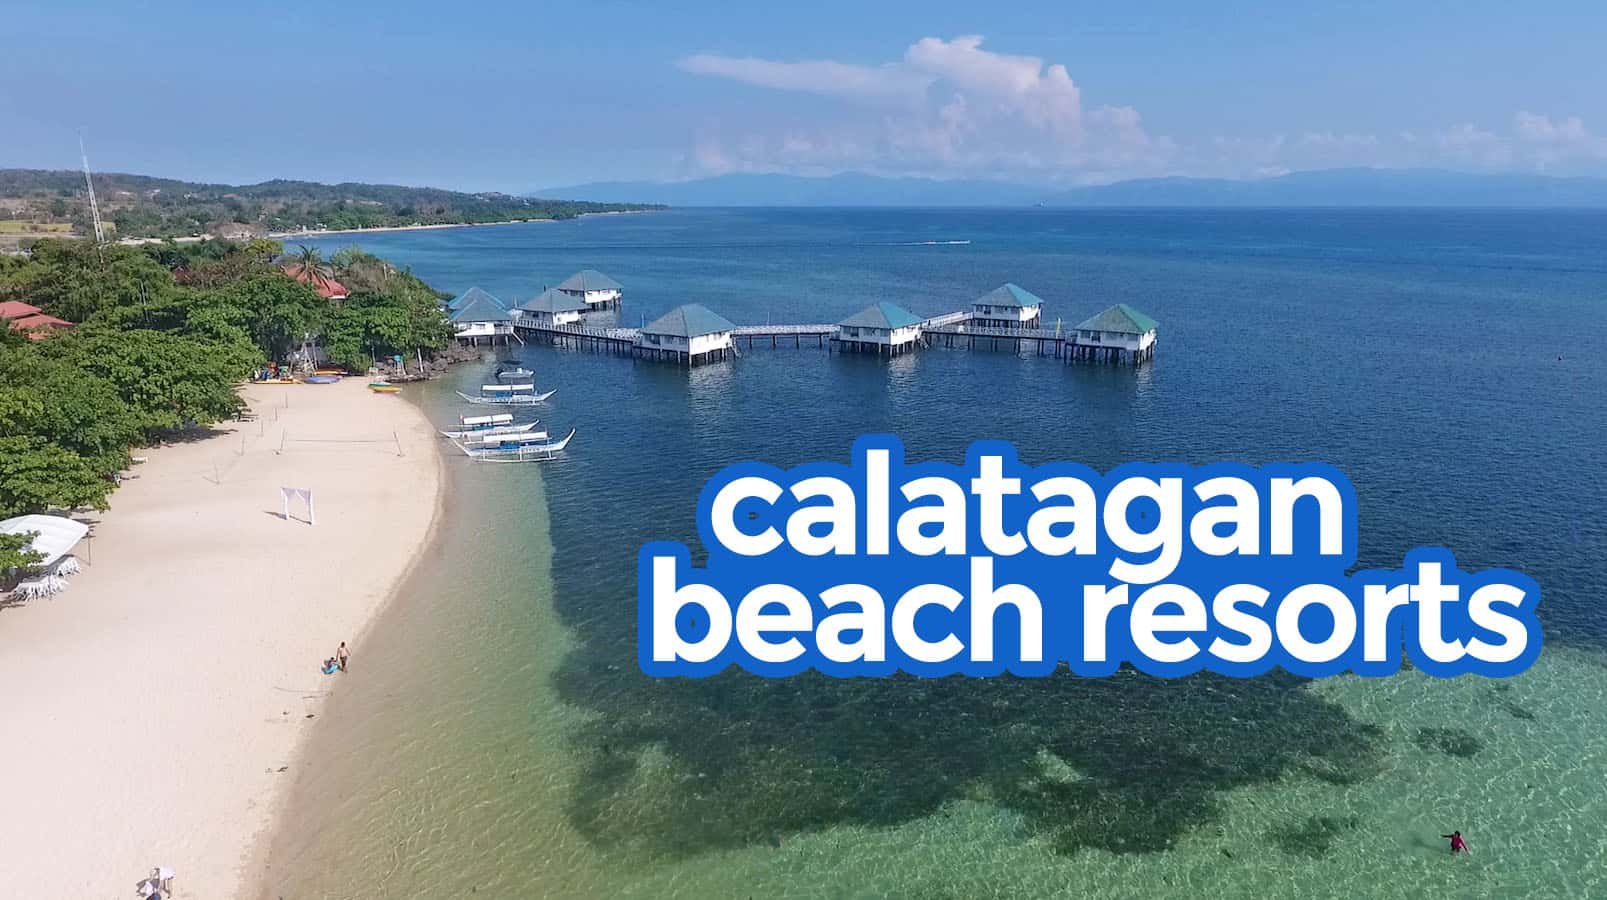 TOP 7 CALATAGAN BEACH RESORTS